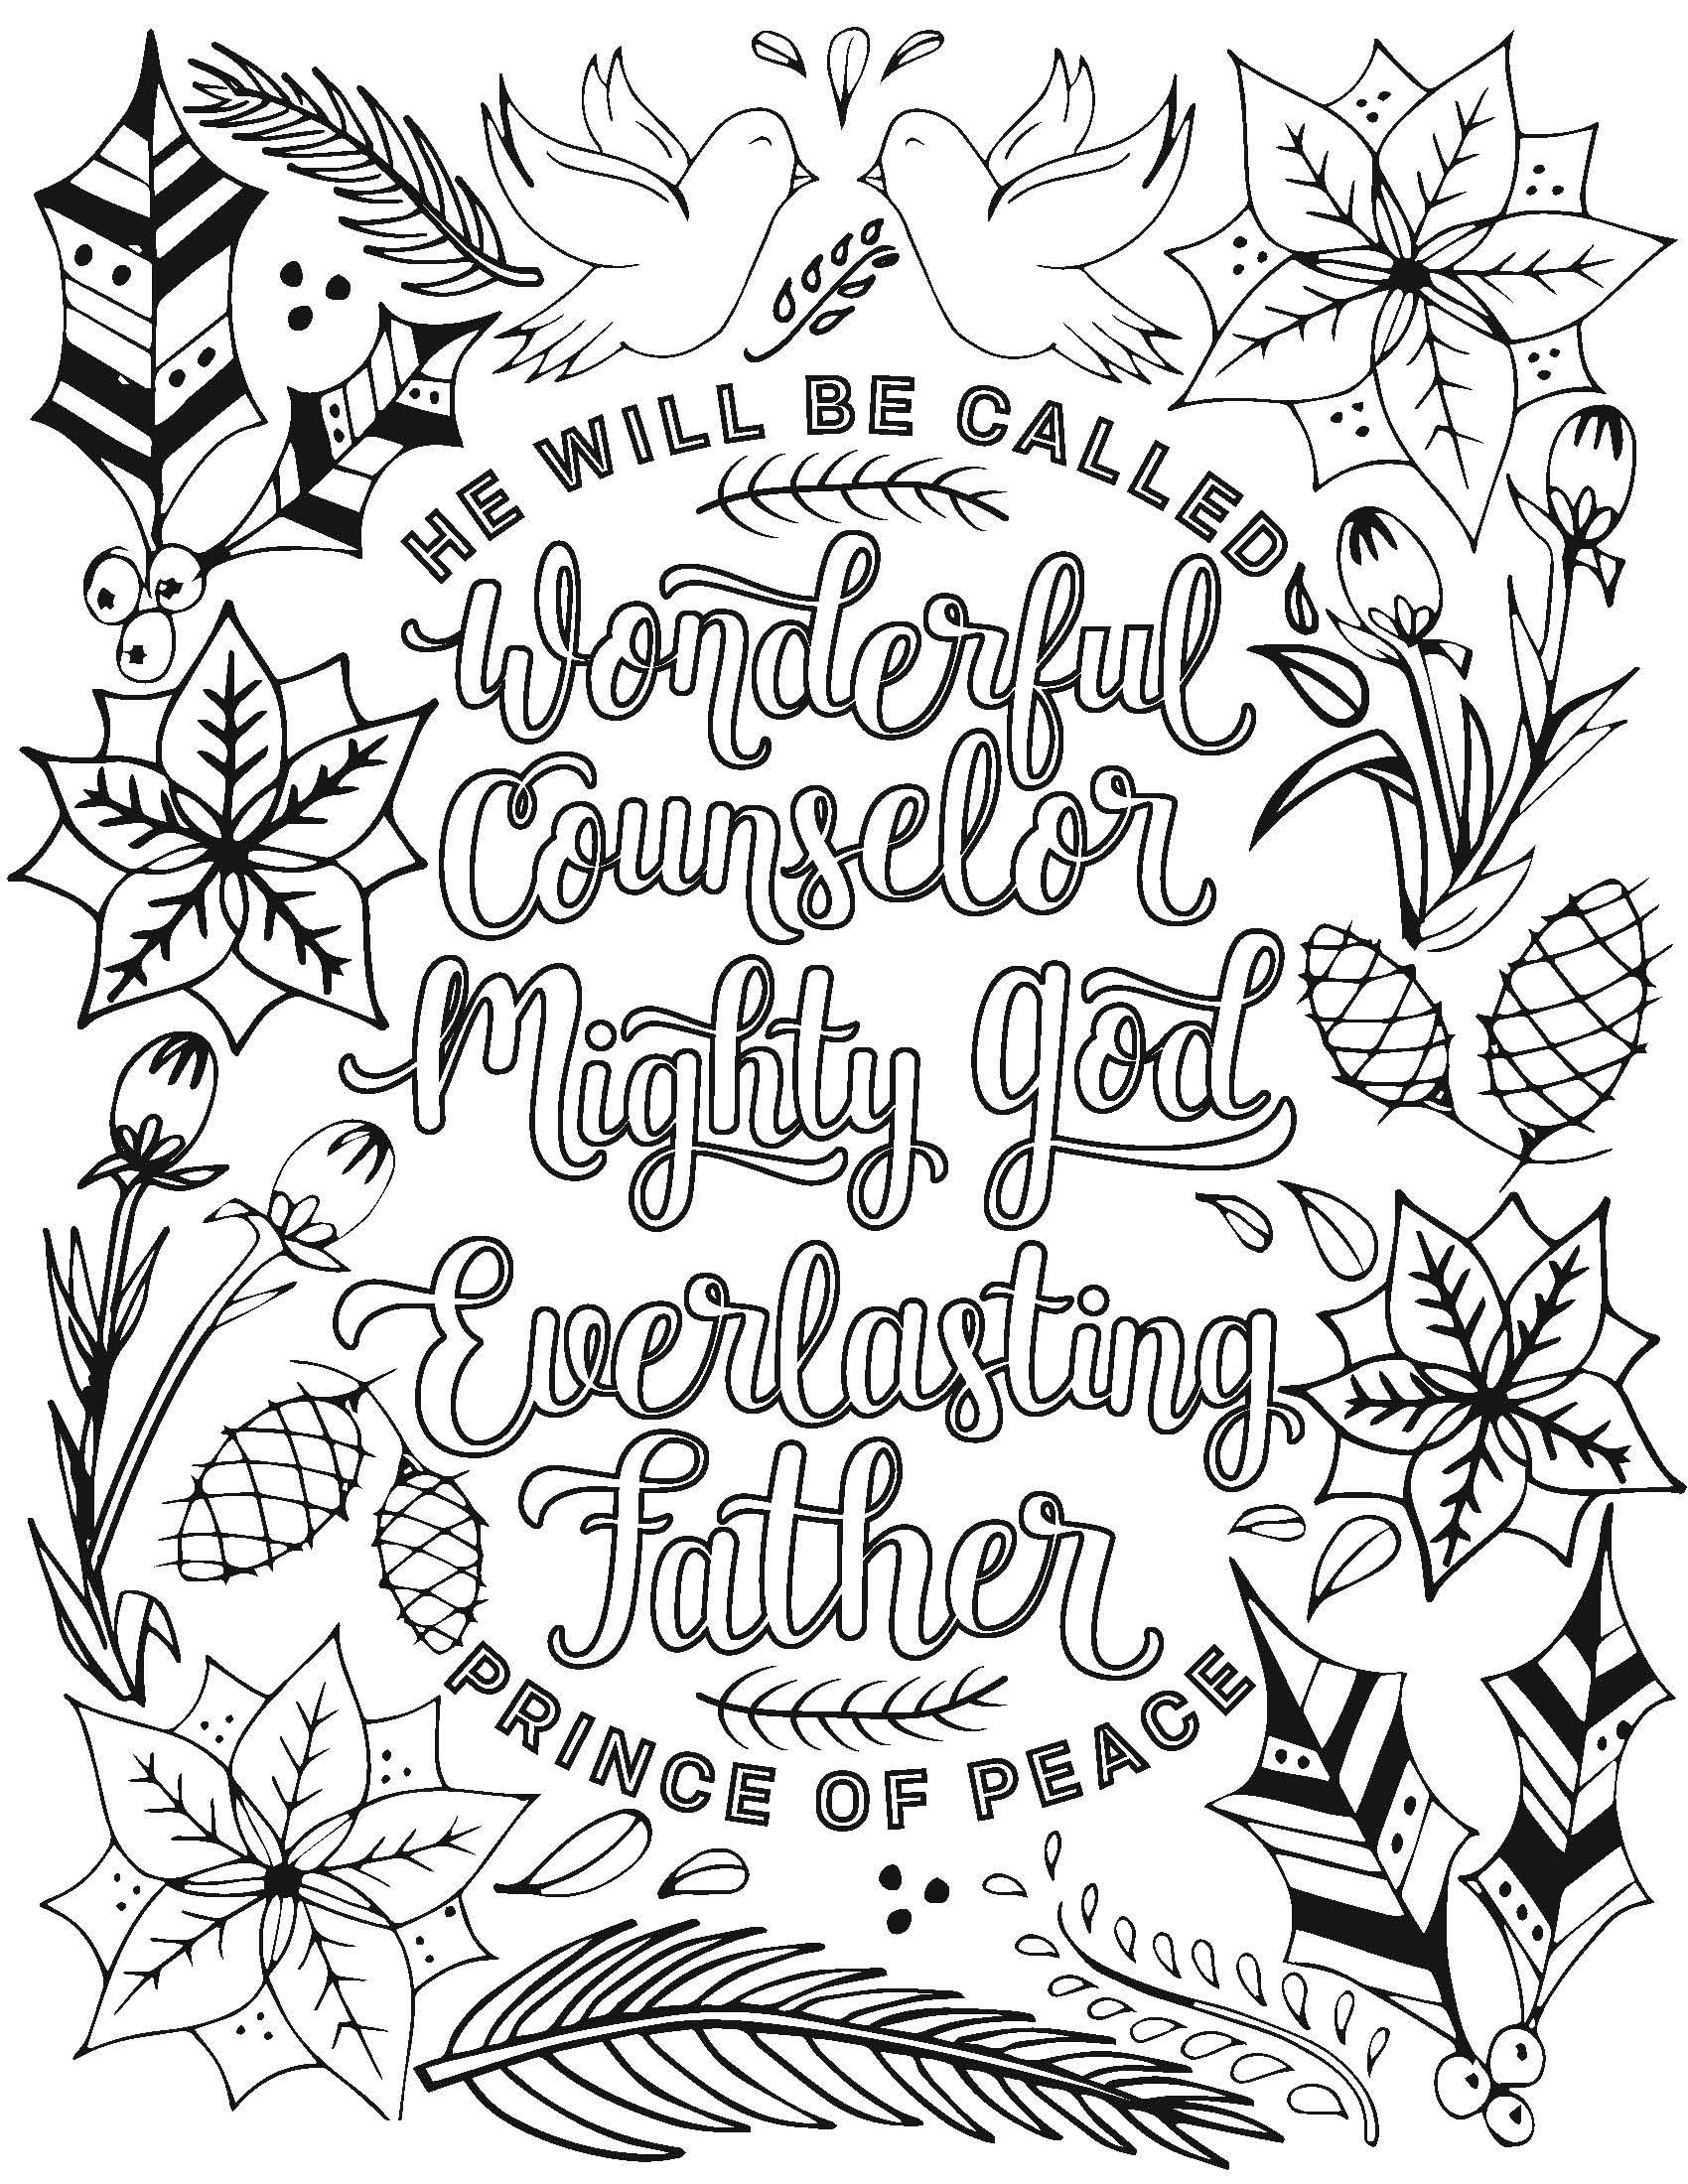 Merry Christmas Mops Coloring Page